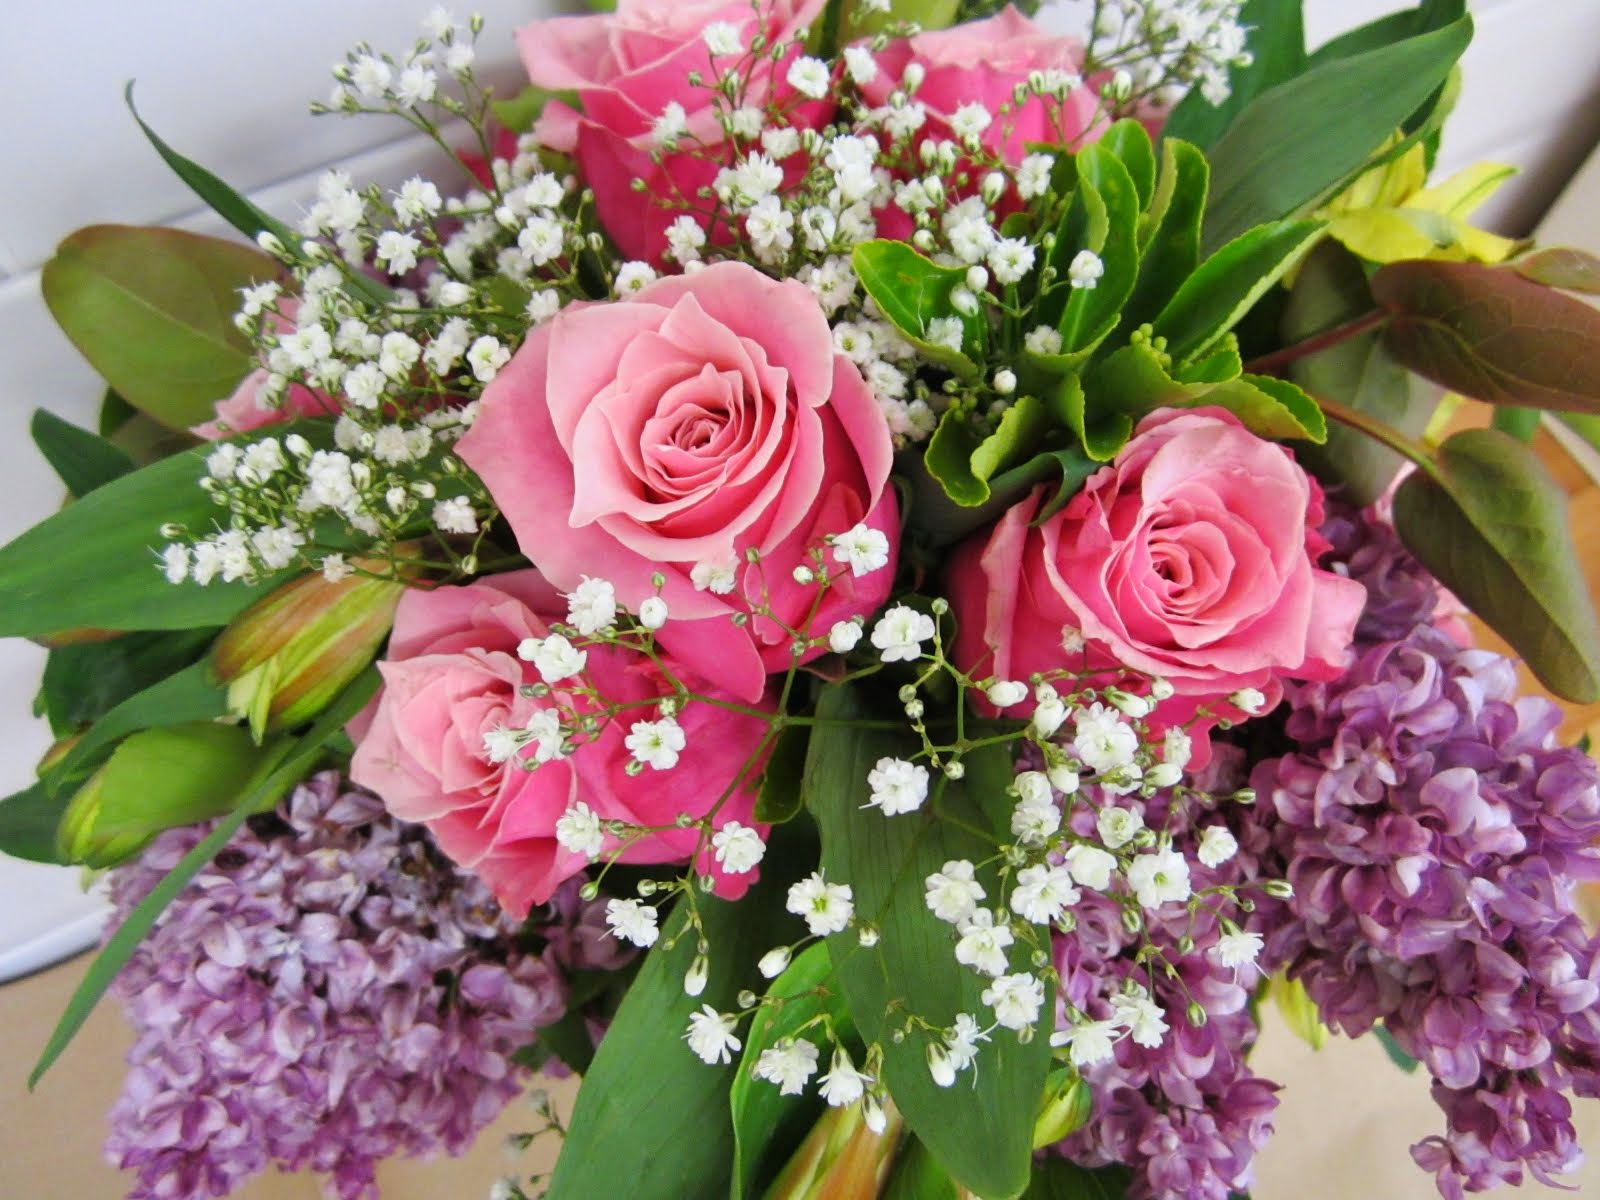 Garden Lilac and Roses